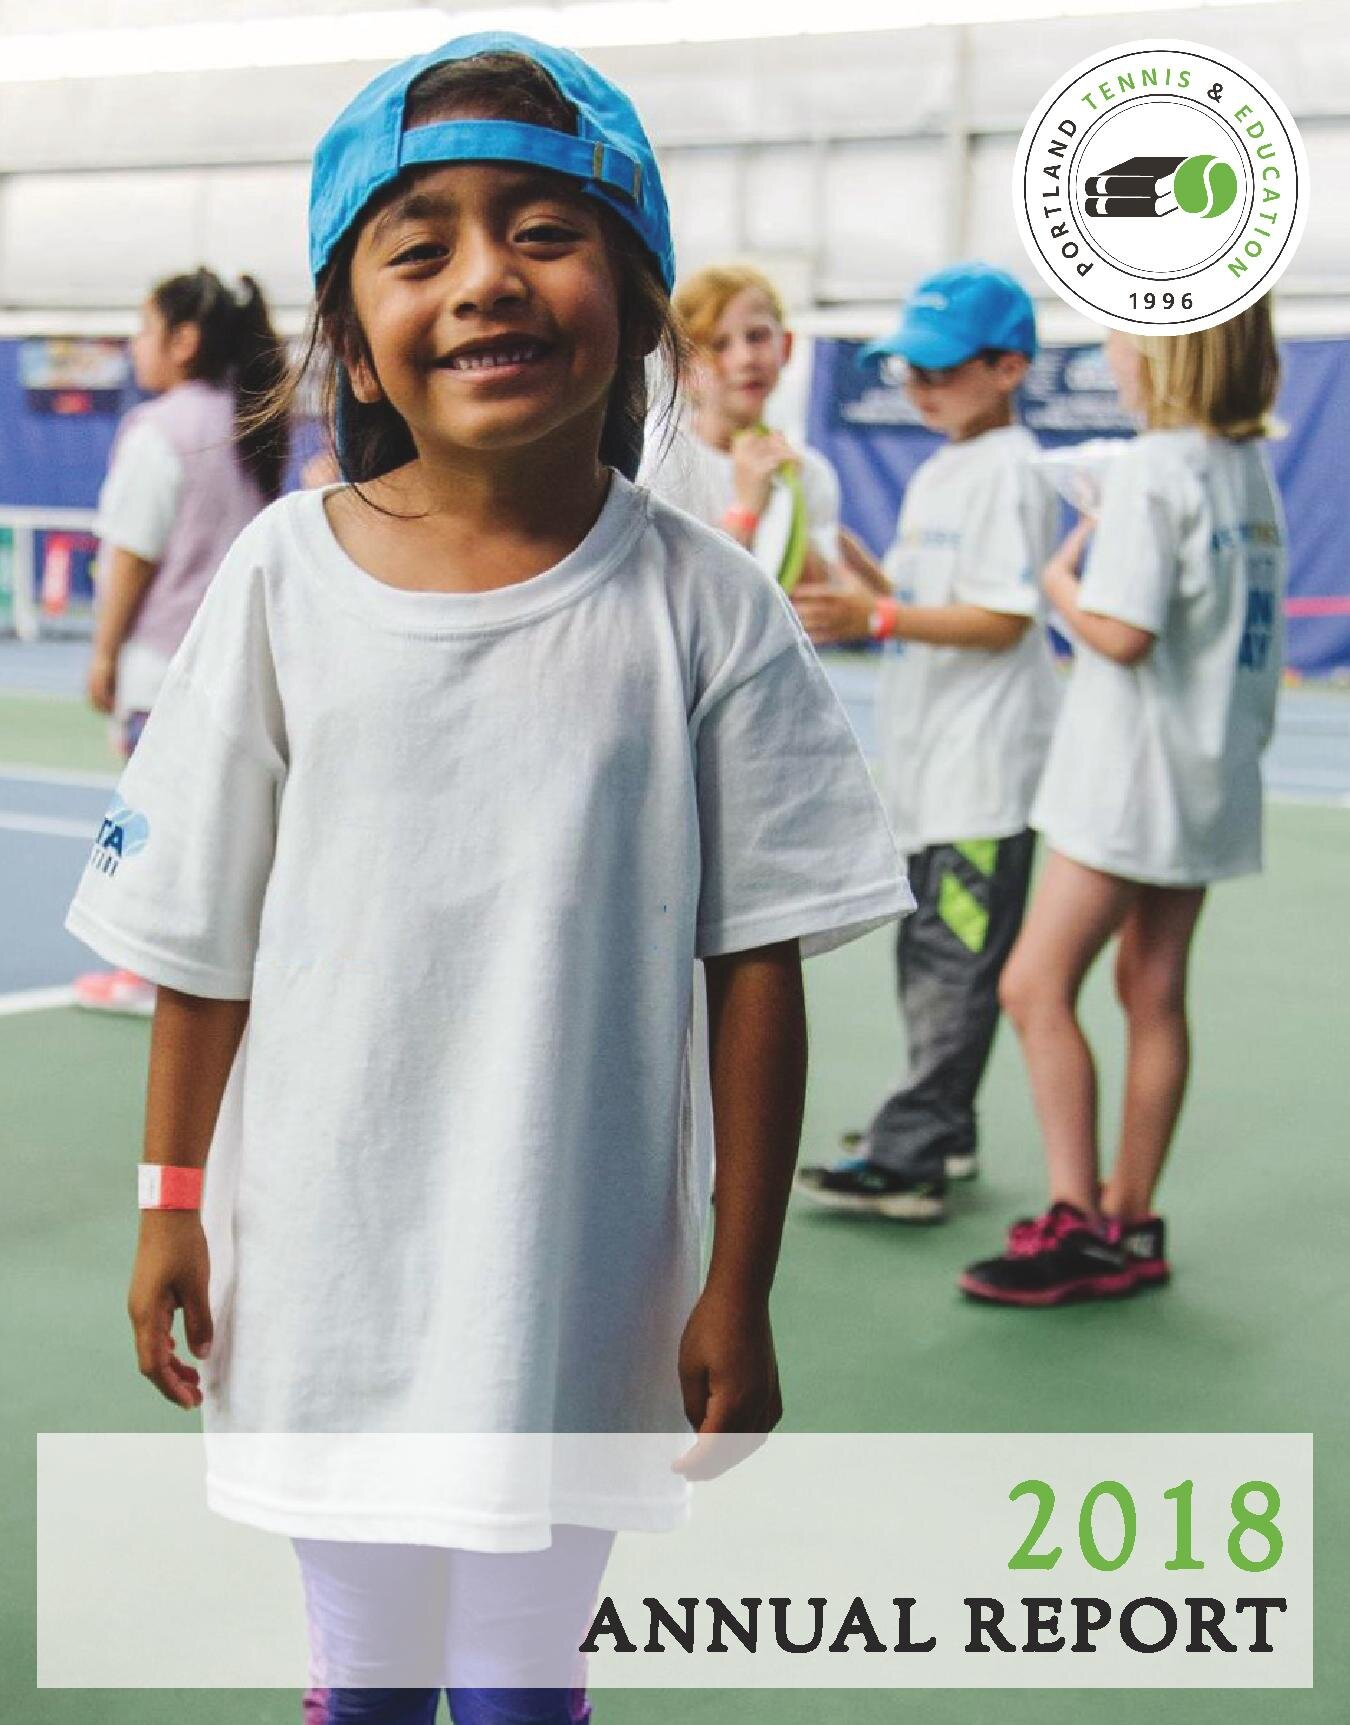 Annual Report (2018)[1166]-page-001.jpg